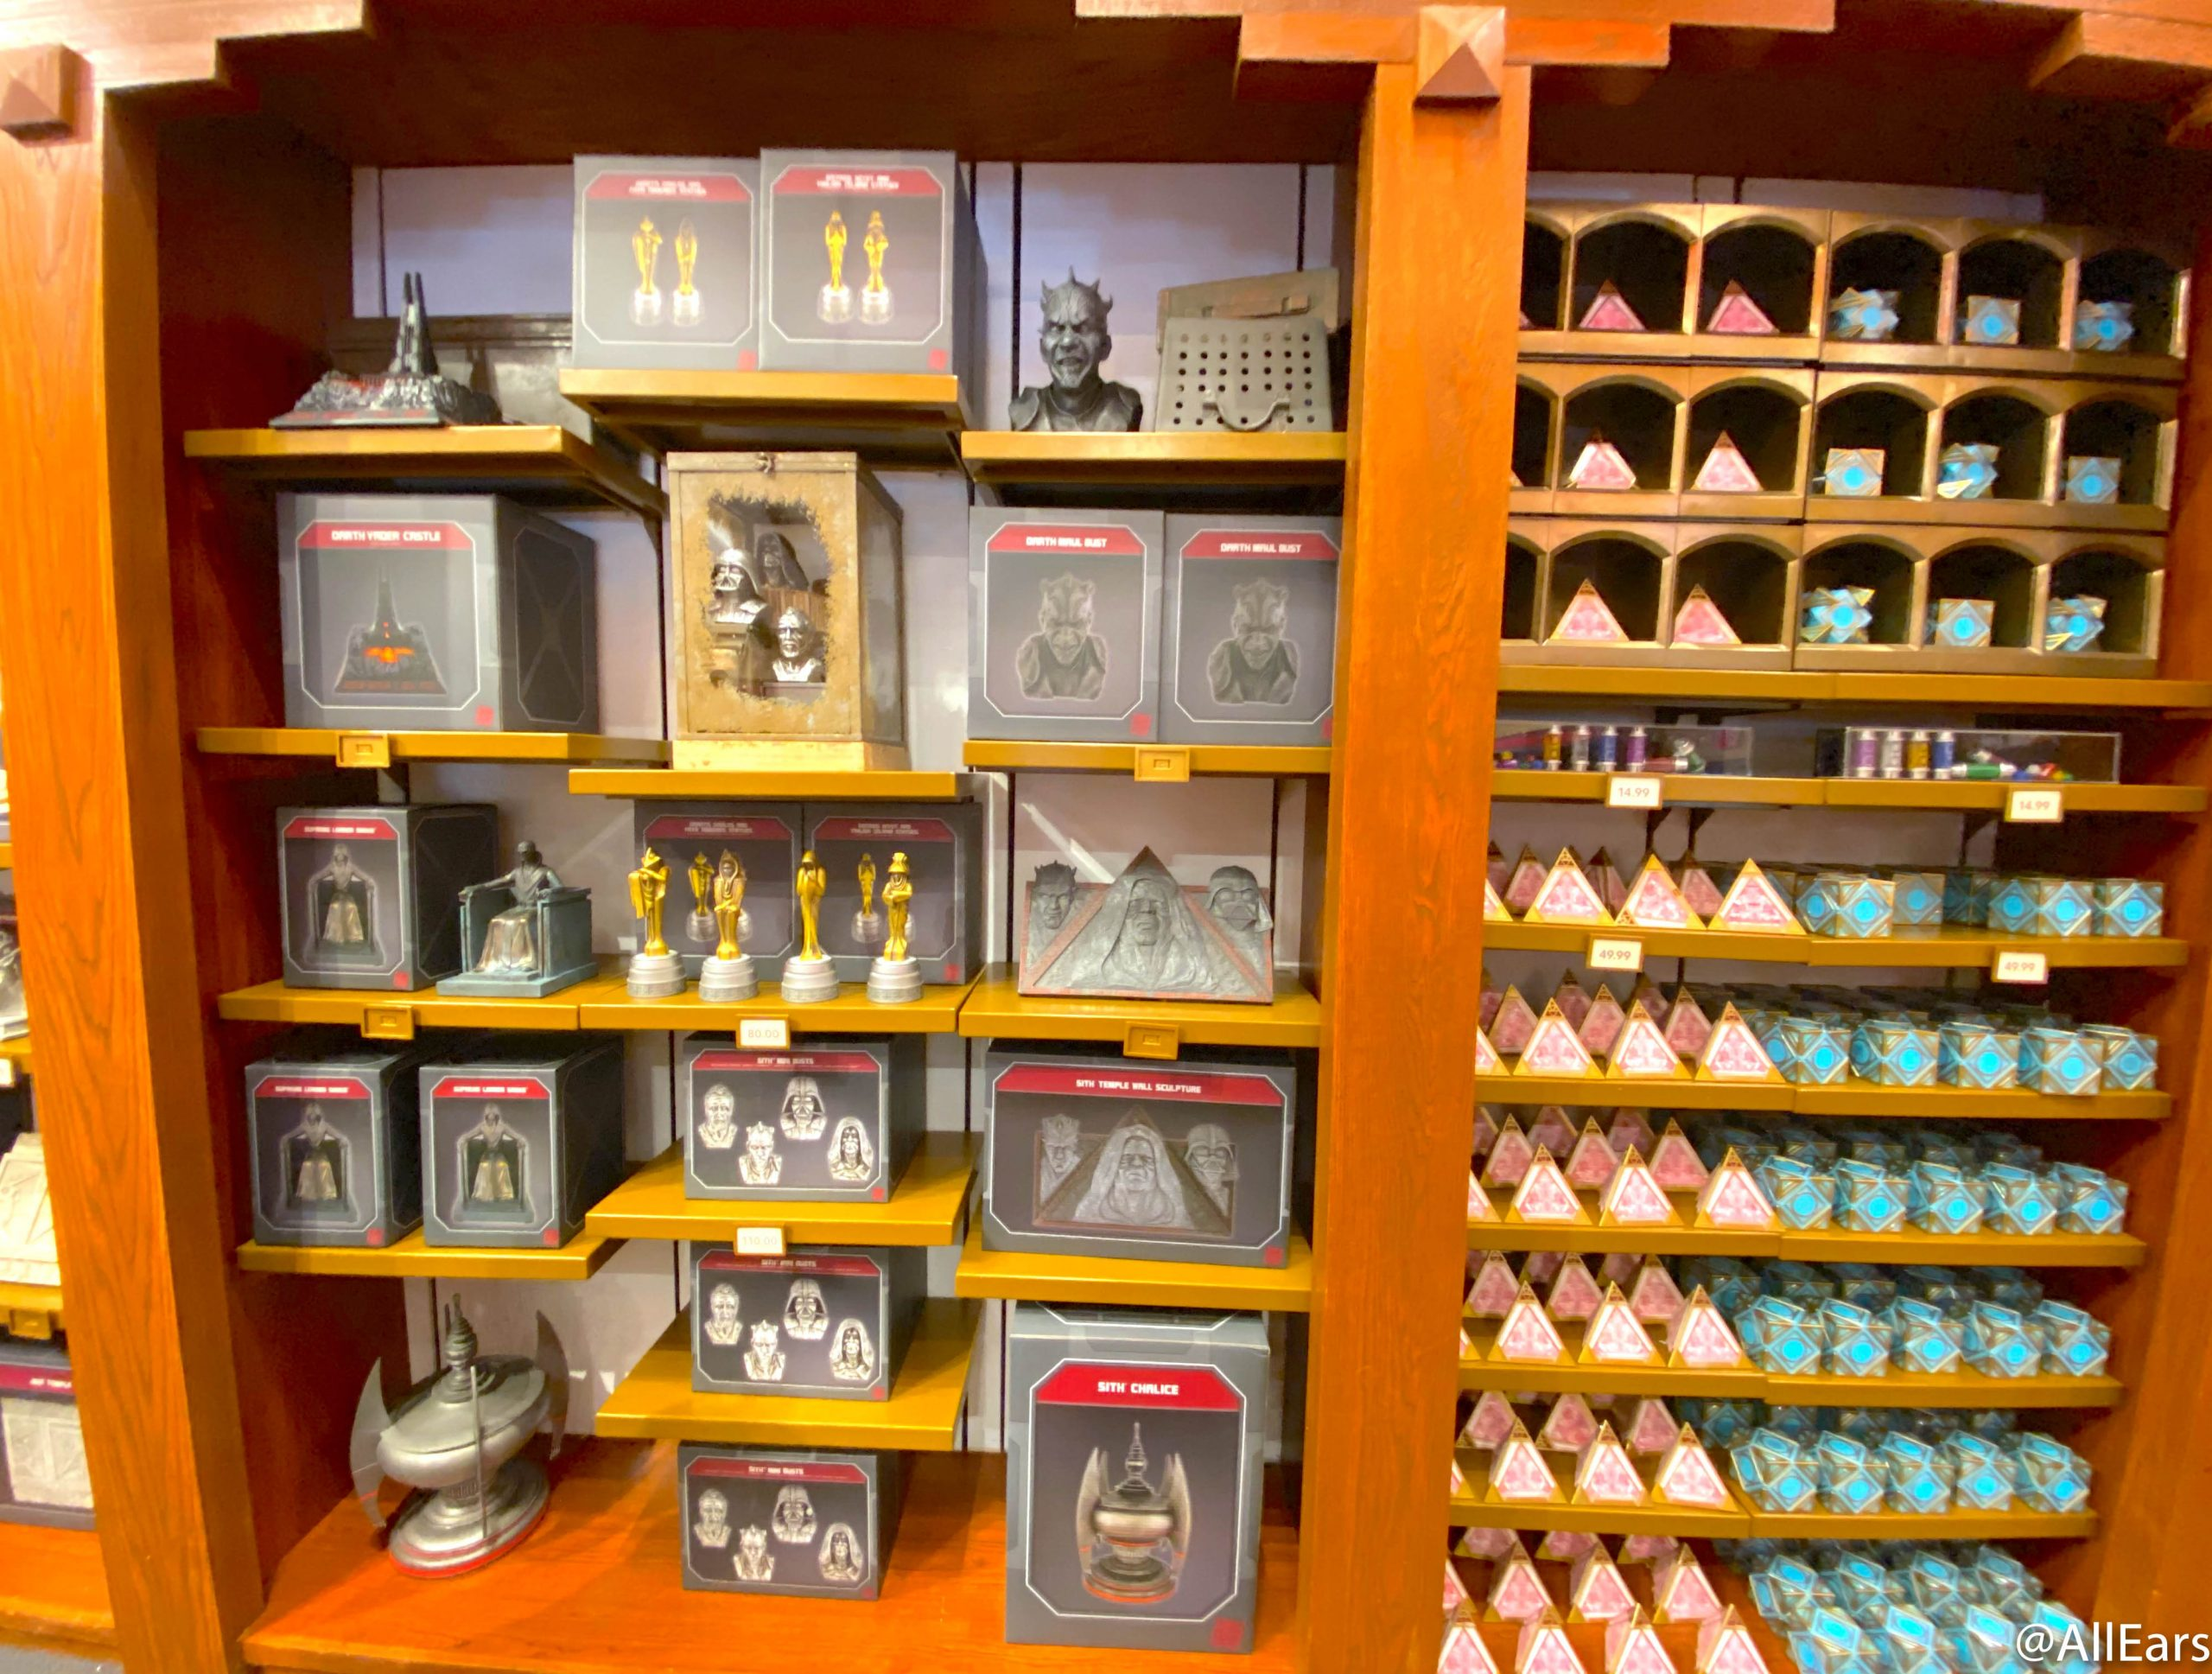 You Don't Need a Park Ticket to Snag All THIS Star Wars: Galaxy's Edge Merchandise in Disney World! - AllEars.Net